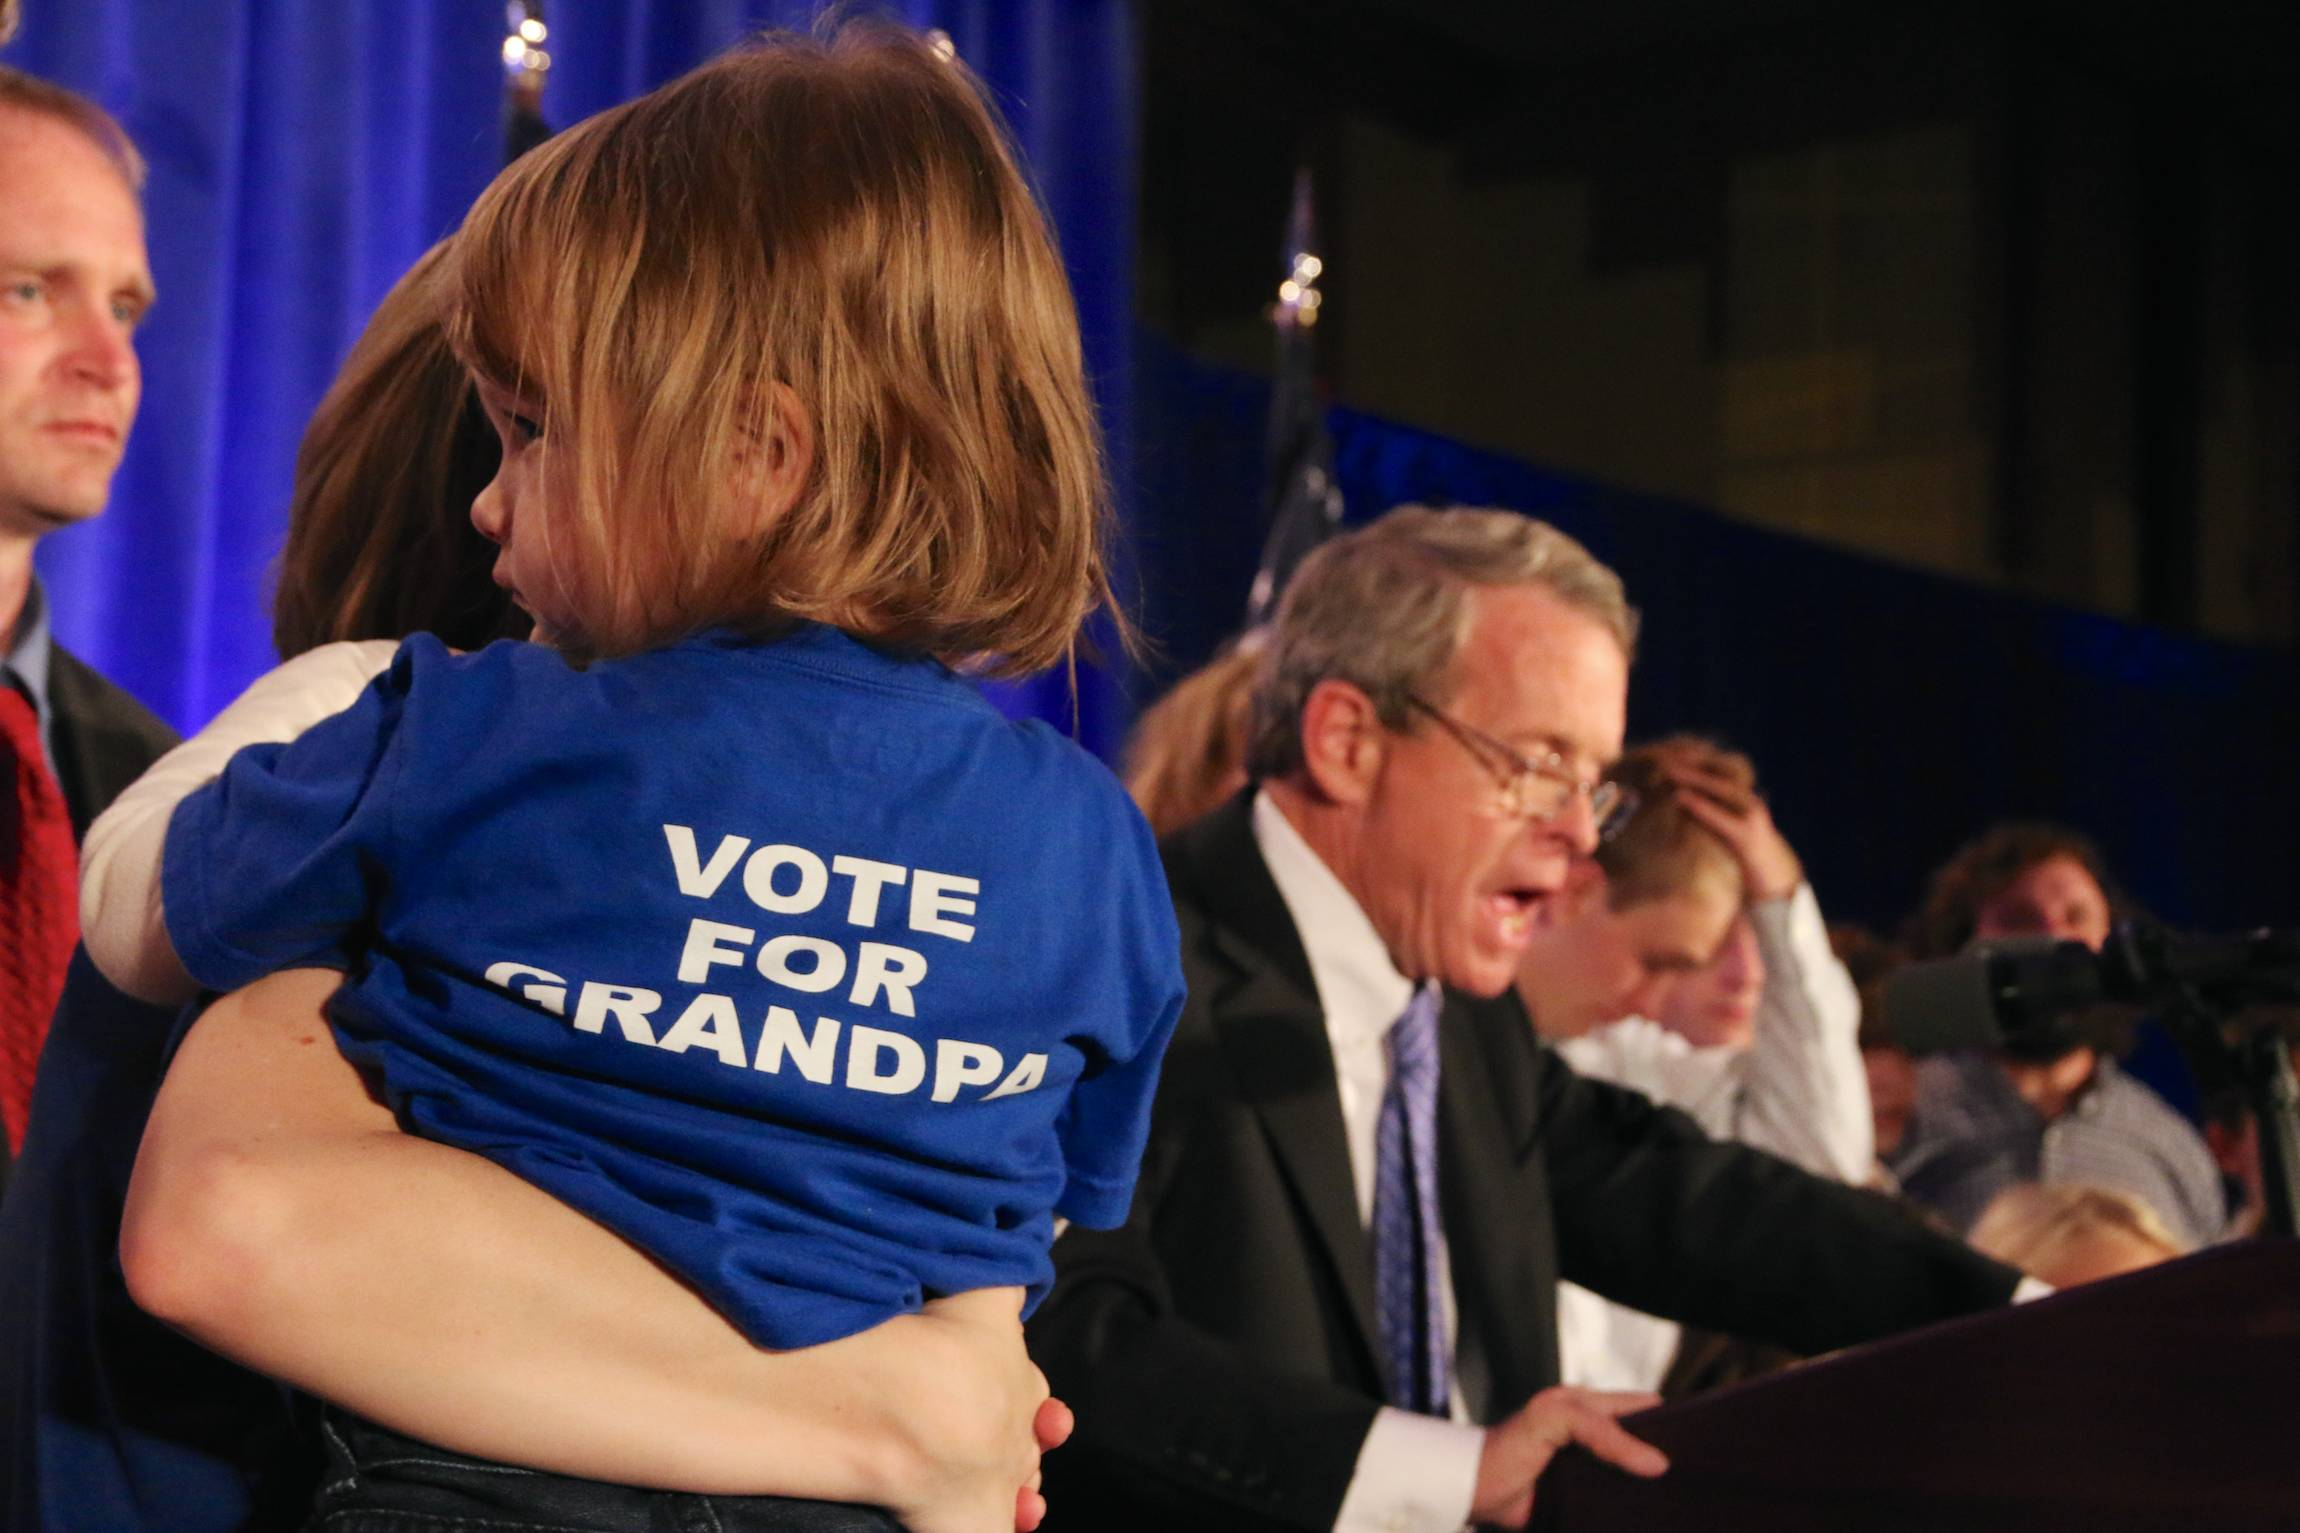 A attorney geneal of Ohio Mike DeWine, speeks, accompagnied by his family, at a Republican Party event in the Renaissance hotel in Columbus, Ohio, Tuesday, Nov. 4 2014, after being reelected in his office.